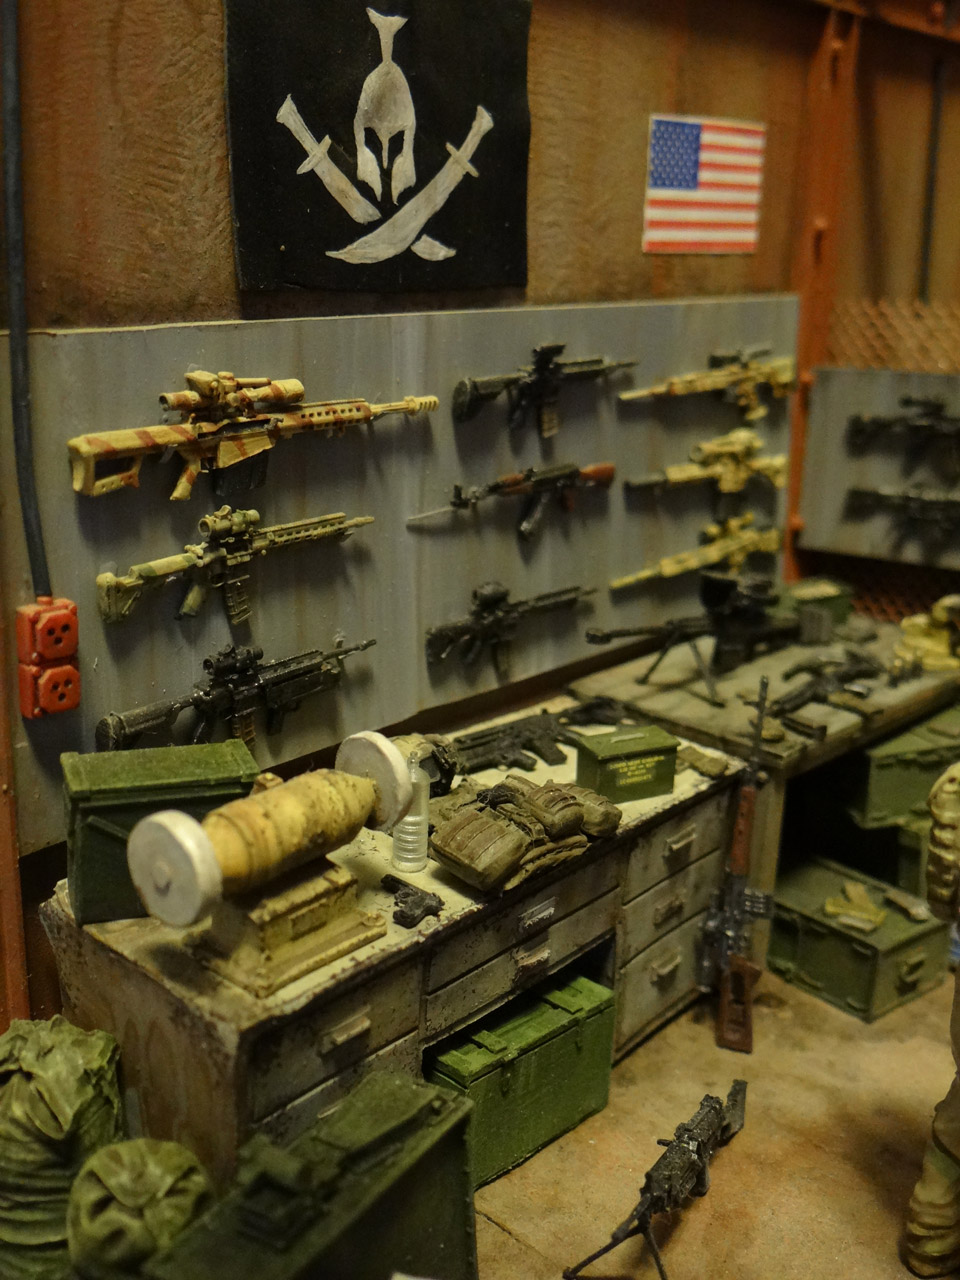 Dioramas and Vignettes: Enforcement to democracy, photo #8